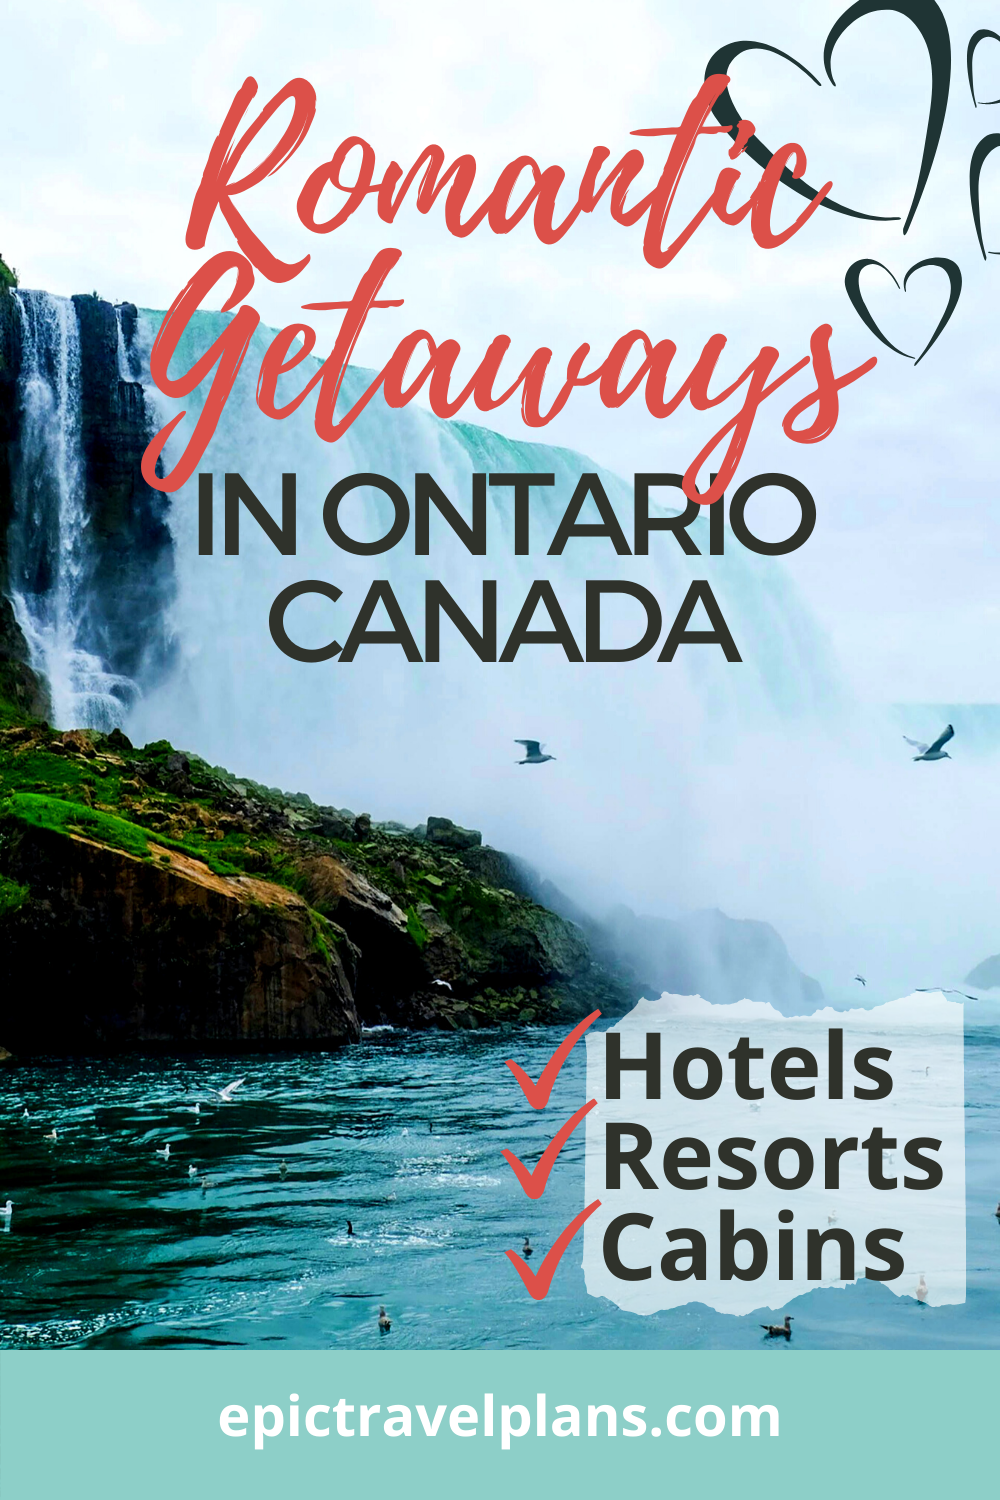 Romantic getaways in Ontario Canada: hotels, resorts and cabins